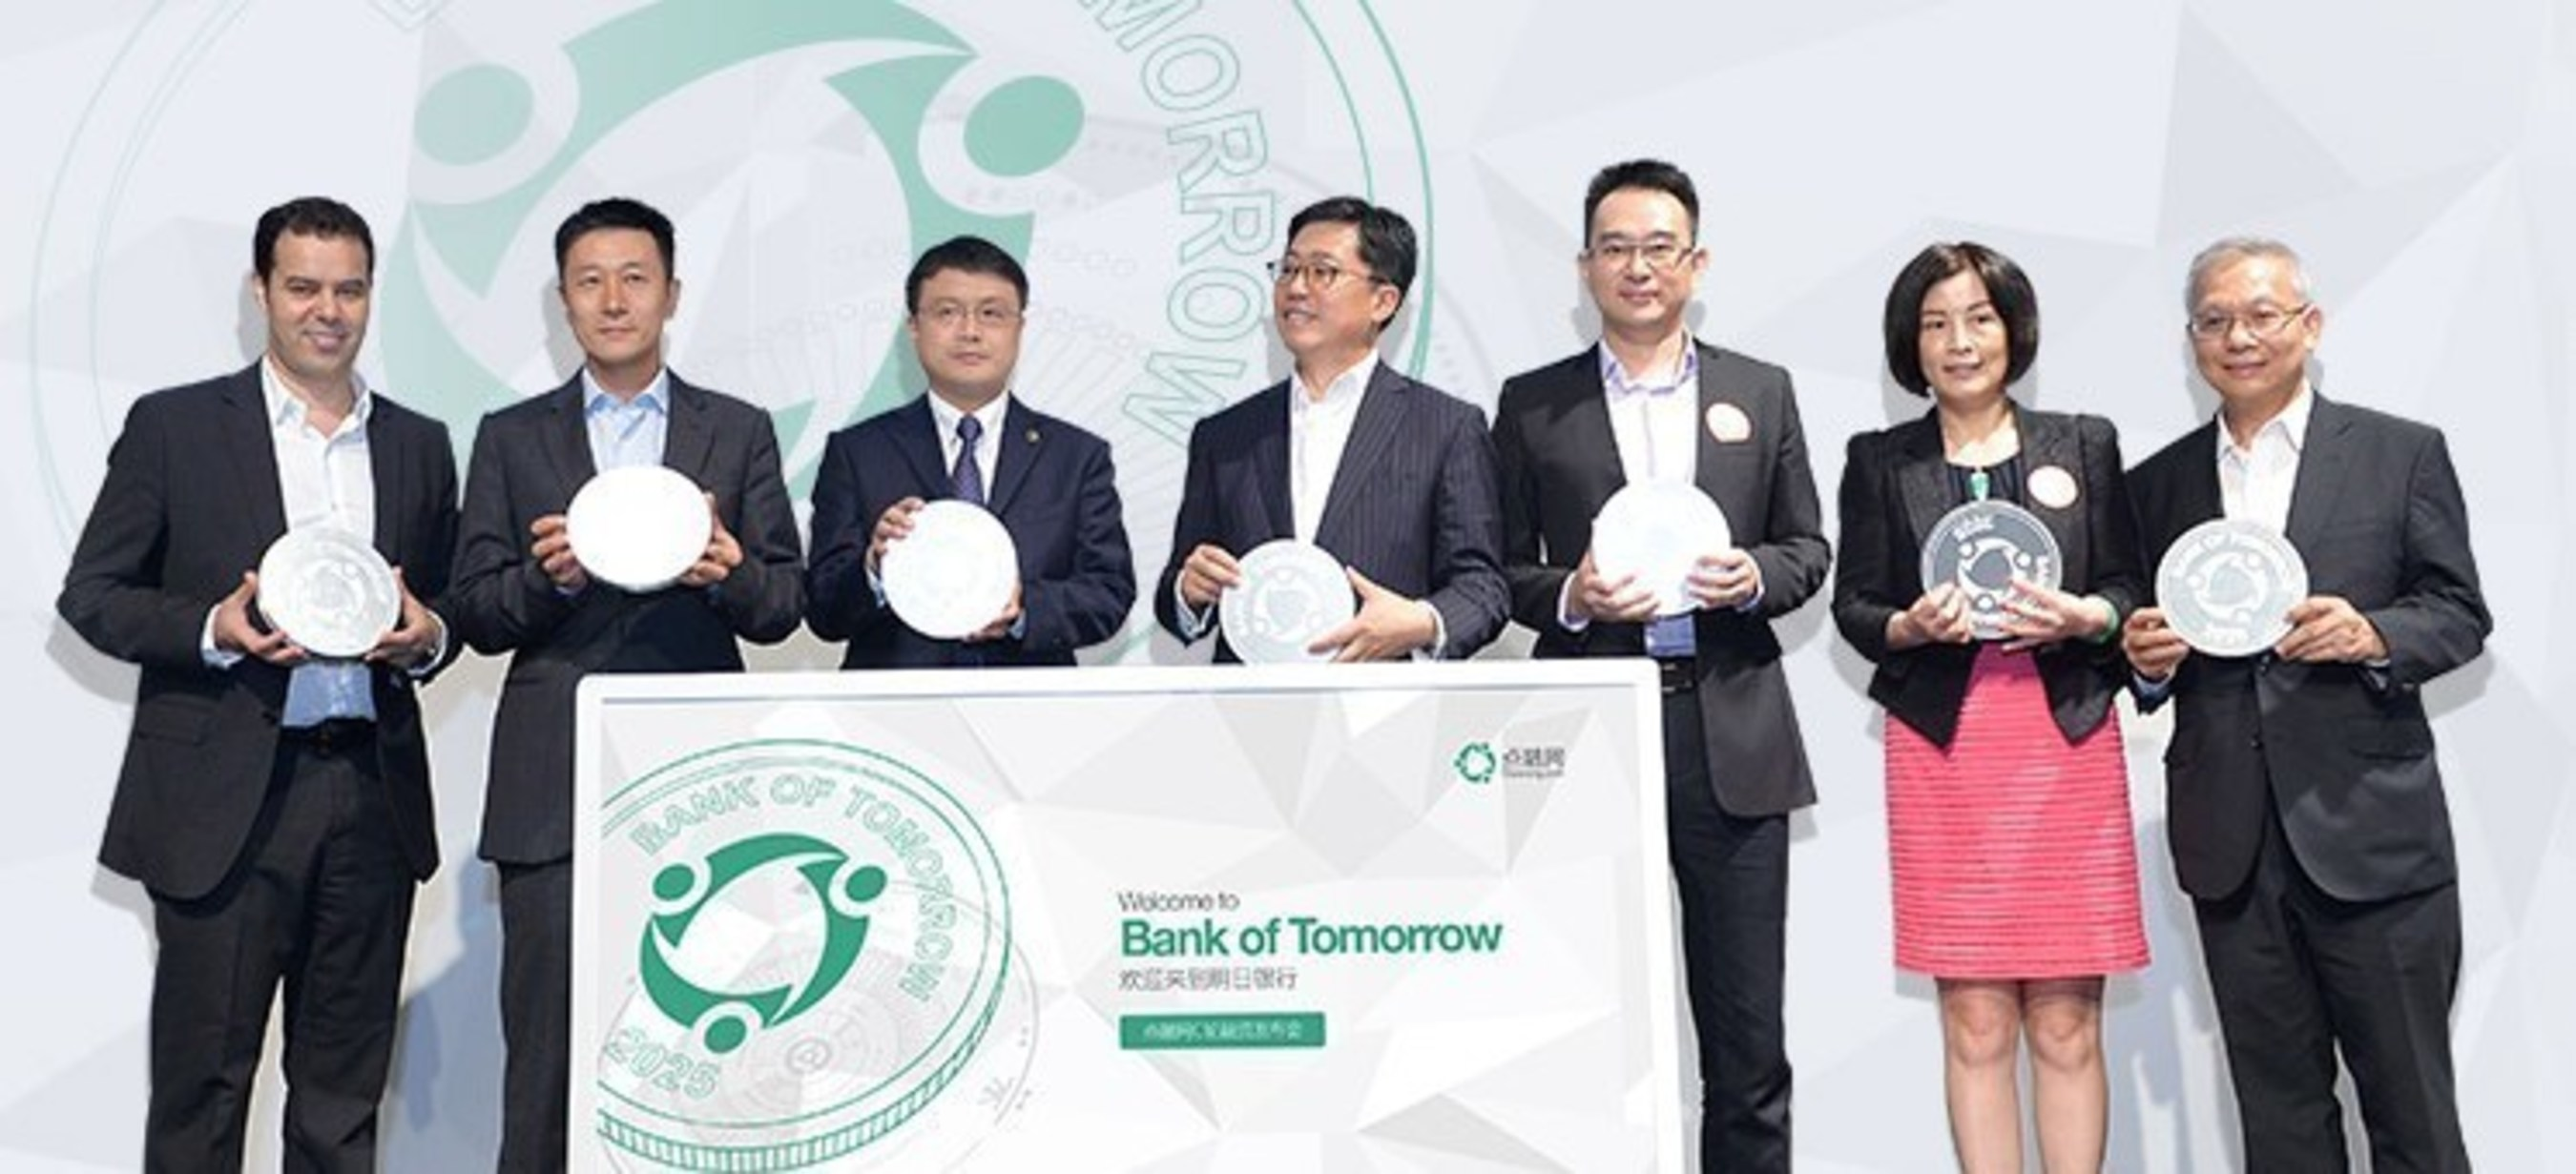 Dianrong Announces C-round Funding of USD 207 Million